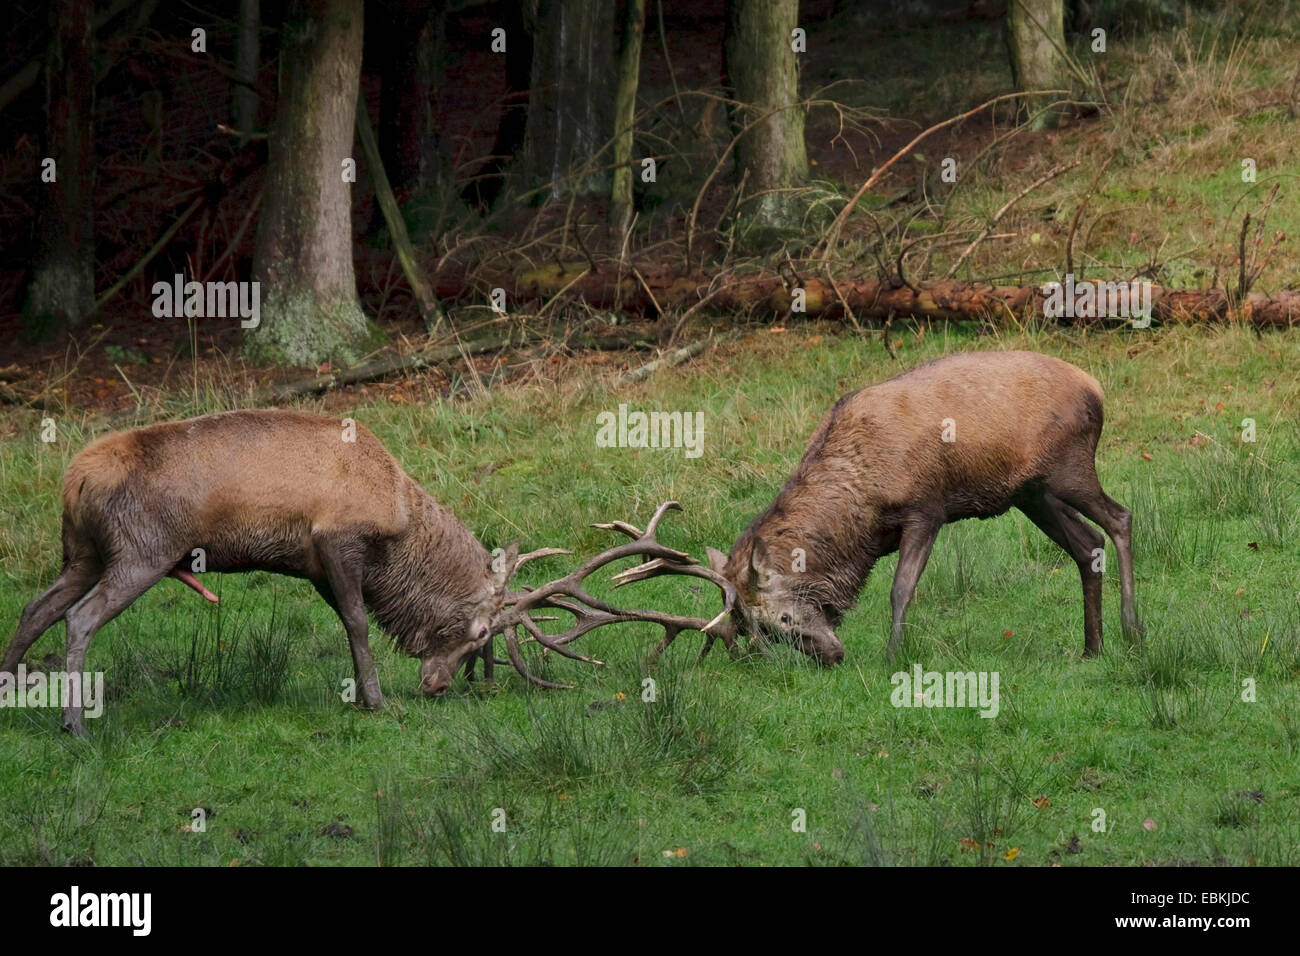 red deer (Cervus elaphus), two bulls in a rutting fight, Germany Stock Photo